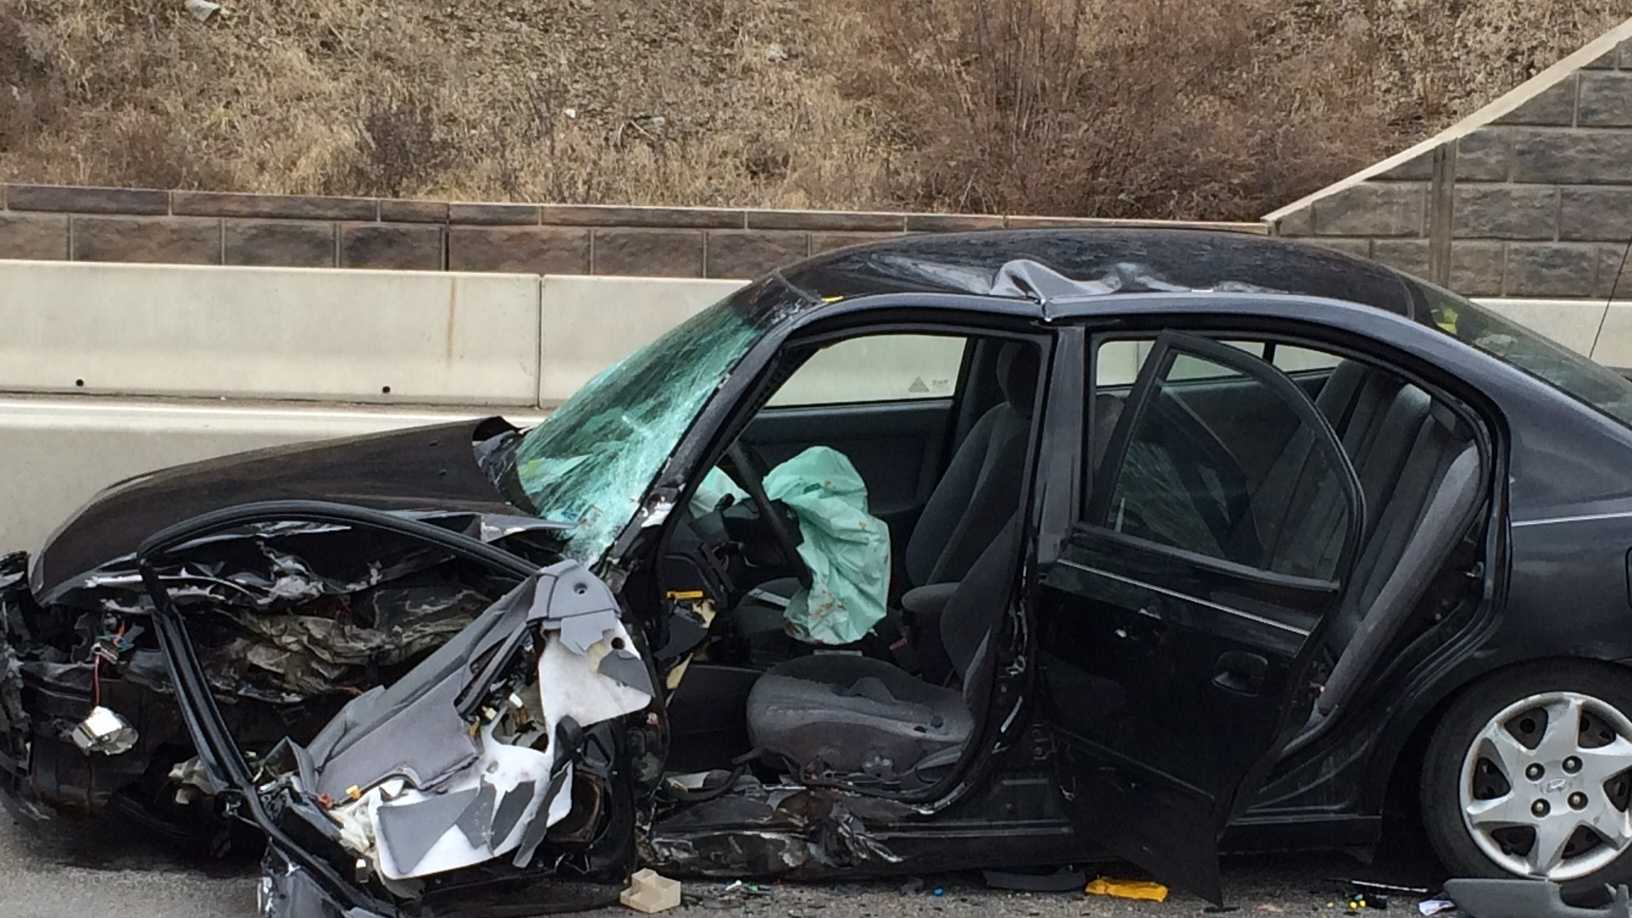 A portion of state Route 28 is closed after a two-vehicle accident.